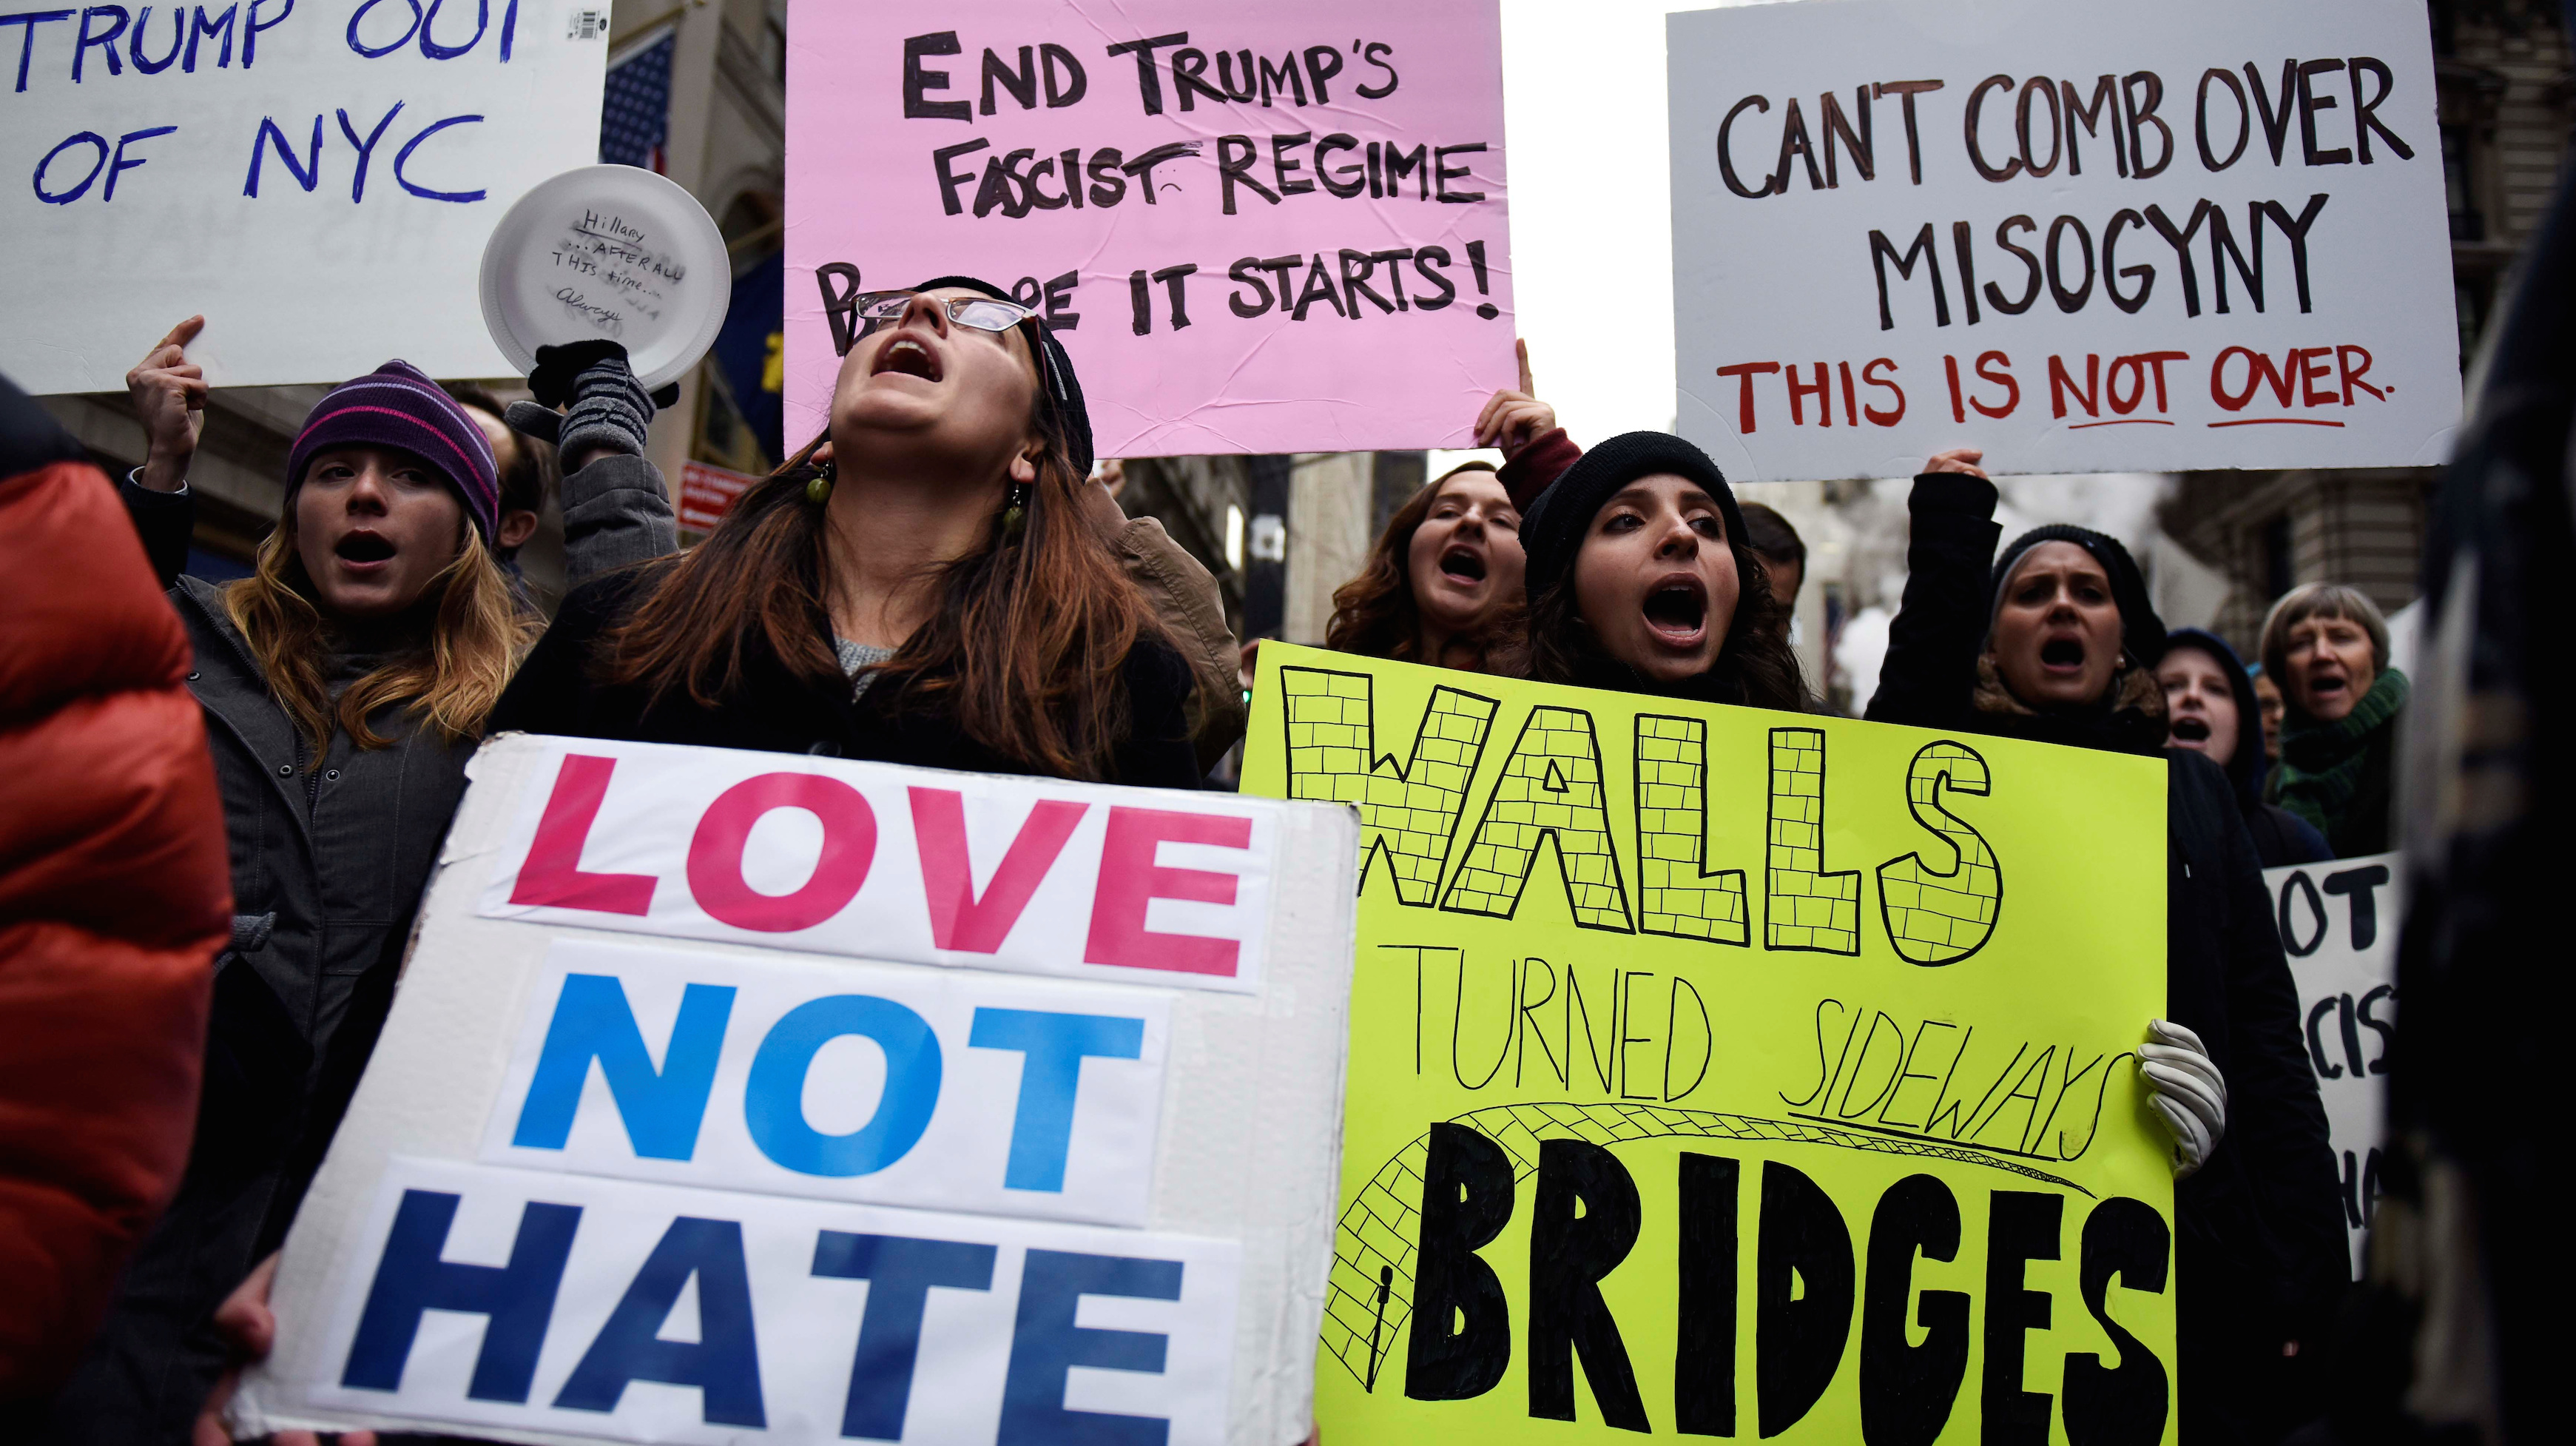 Protesters against U.S. President-elect Donald Trump shout slogans while demonstrating near Trump Tower in the Manhattan borough of New York, U.S. November 20, 2016.